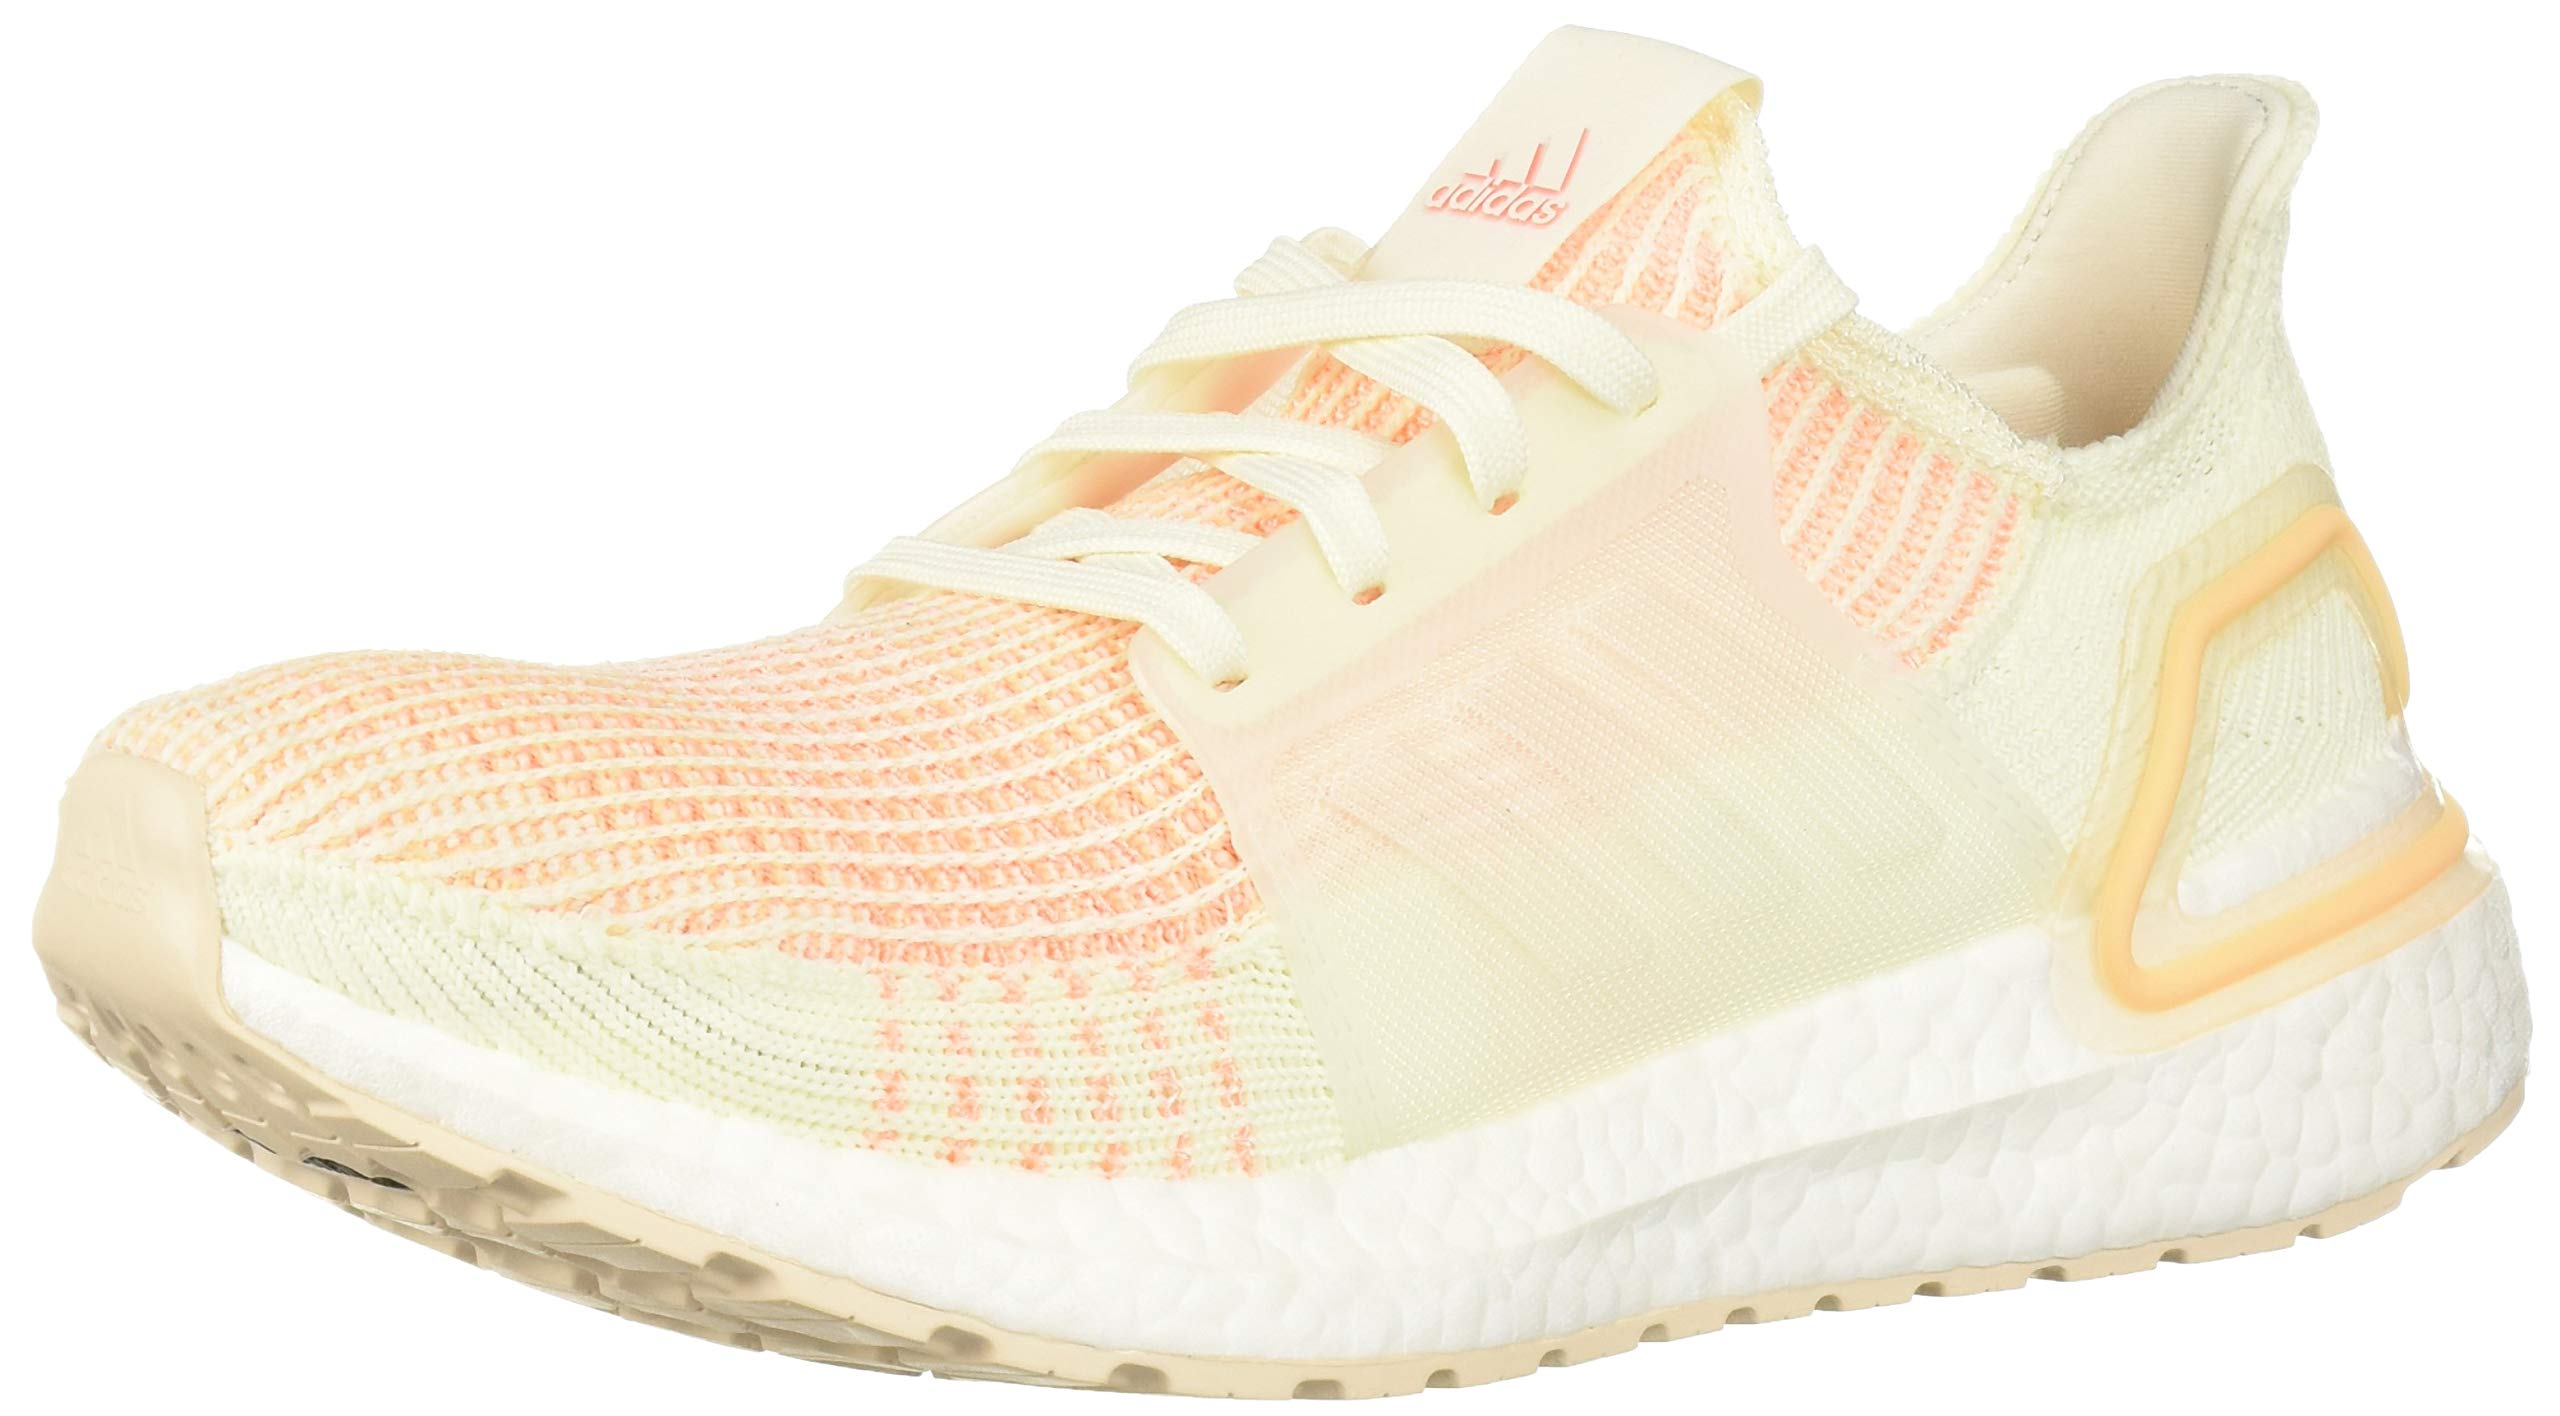 adidas Women's Ultraboost 19 Running Shoe, Off White/Glow Orange, 11 M US by adidas